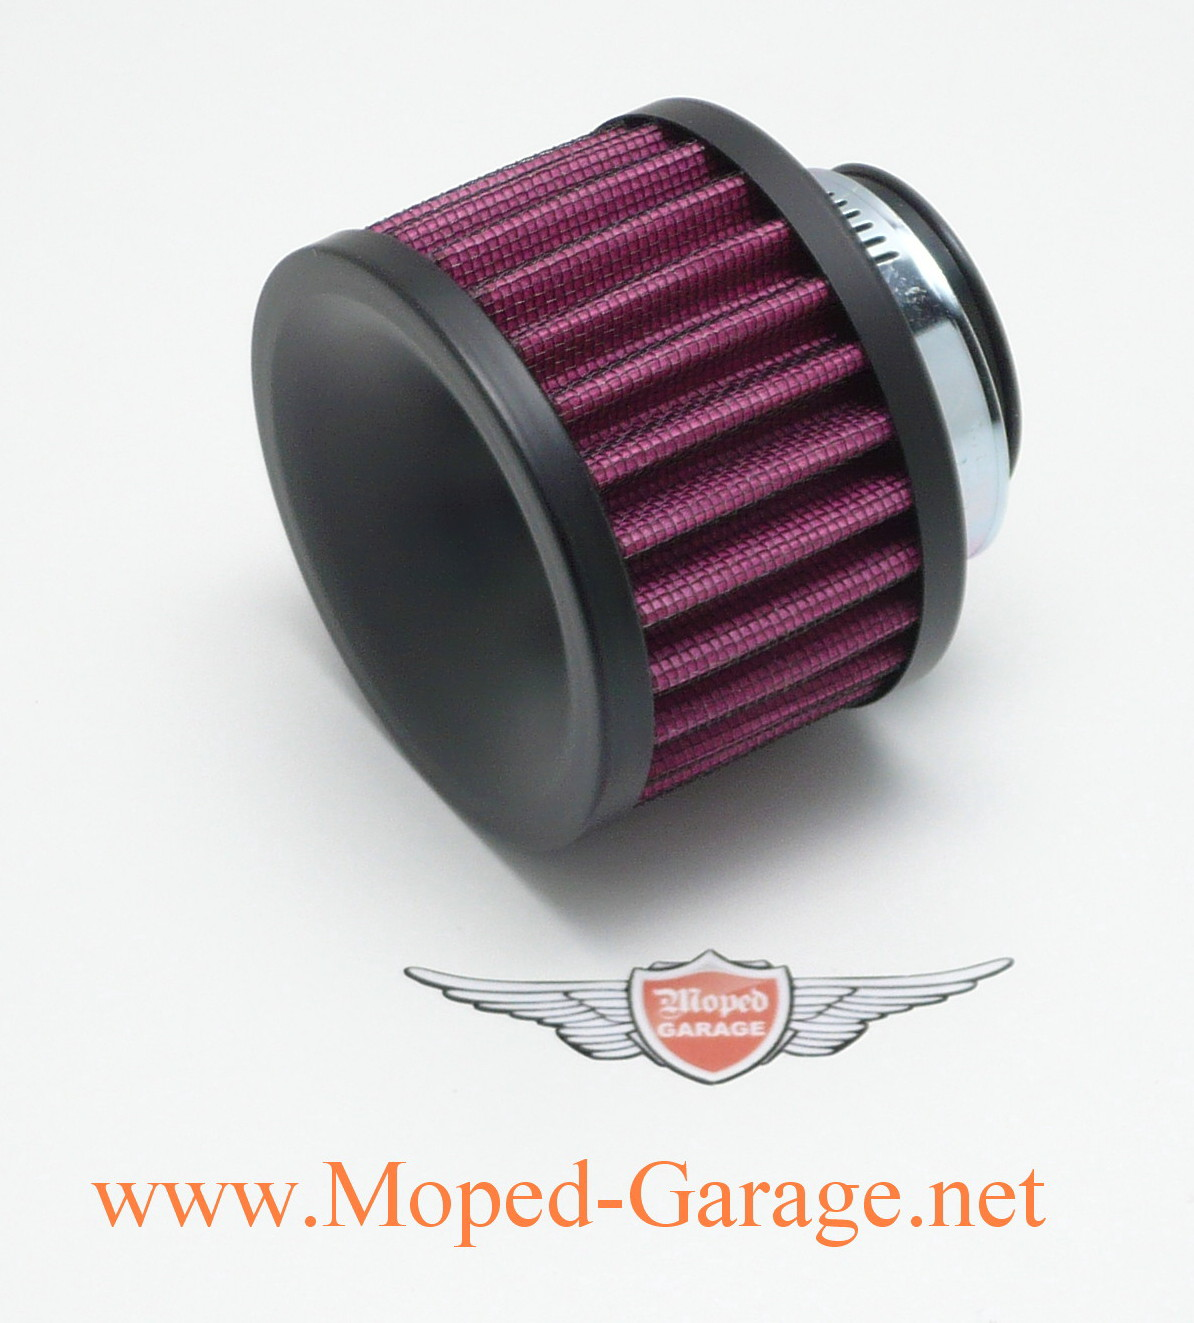 Zündapp Mofa Moped Roller Mokick KKR Tuning Power Luftfilter 52mm Neu*